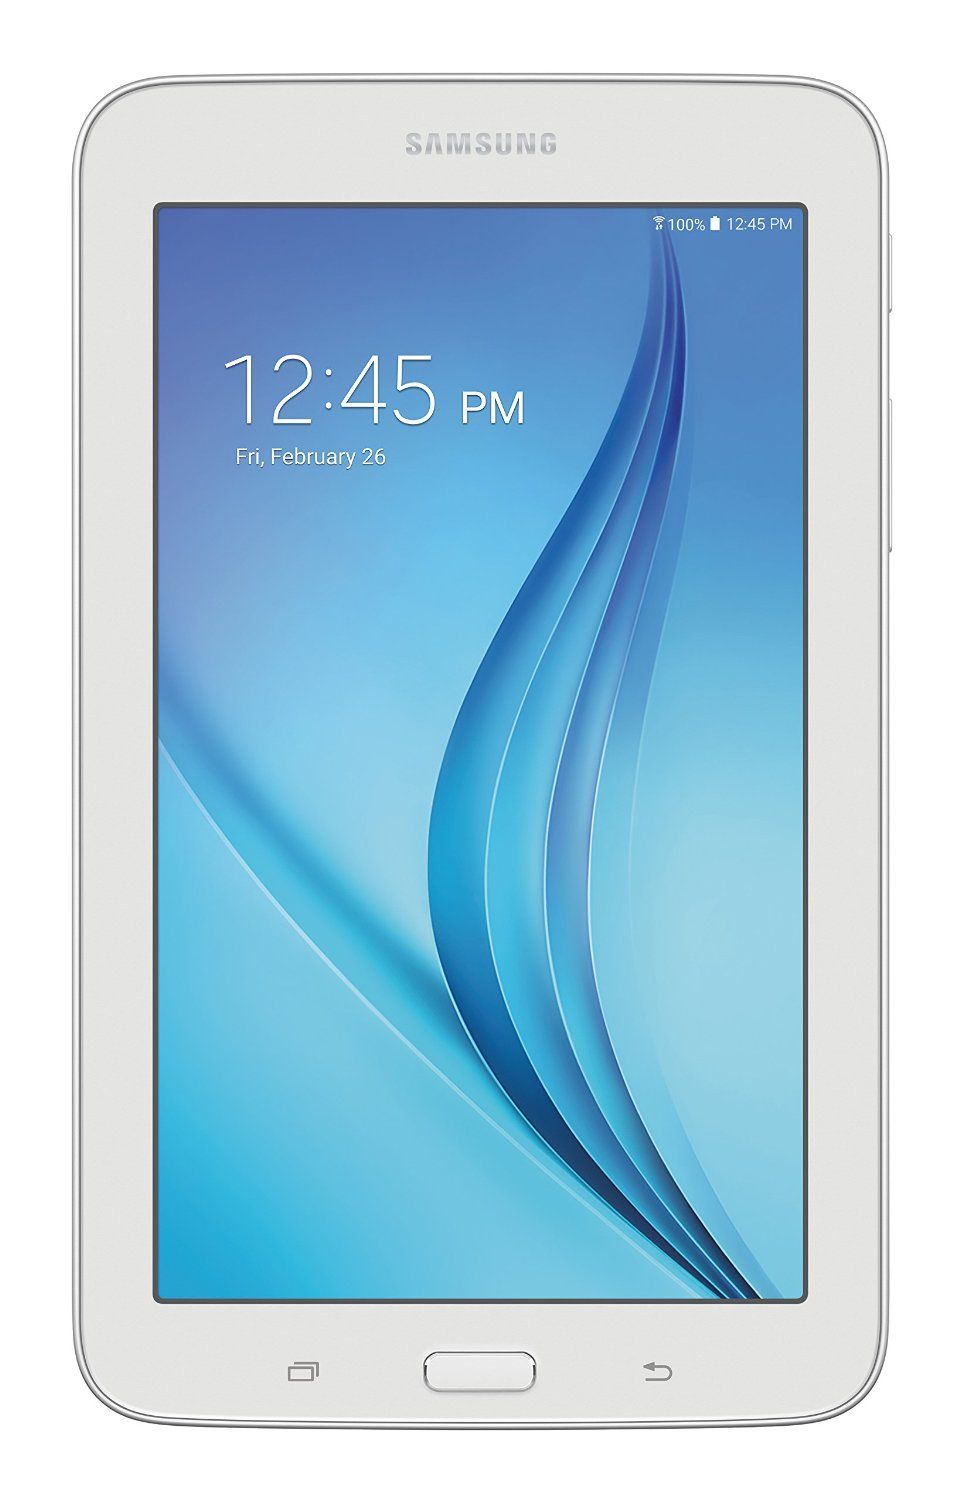 Samsung Galaxy Tab E Lite 7 Inch Tablet 8 Gb White Latest Electronic Review Products In 2020 Samsung Galaxy Tab Samsung Galaxy Samsung Galaxy Tablet